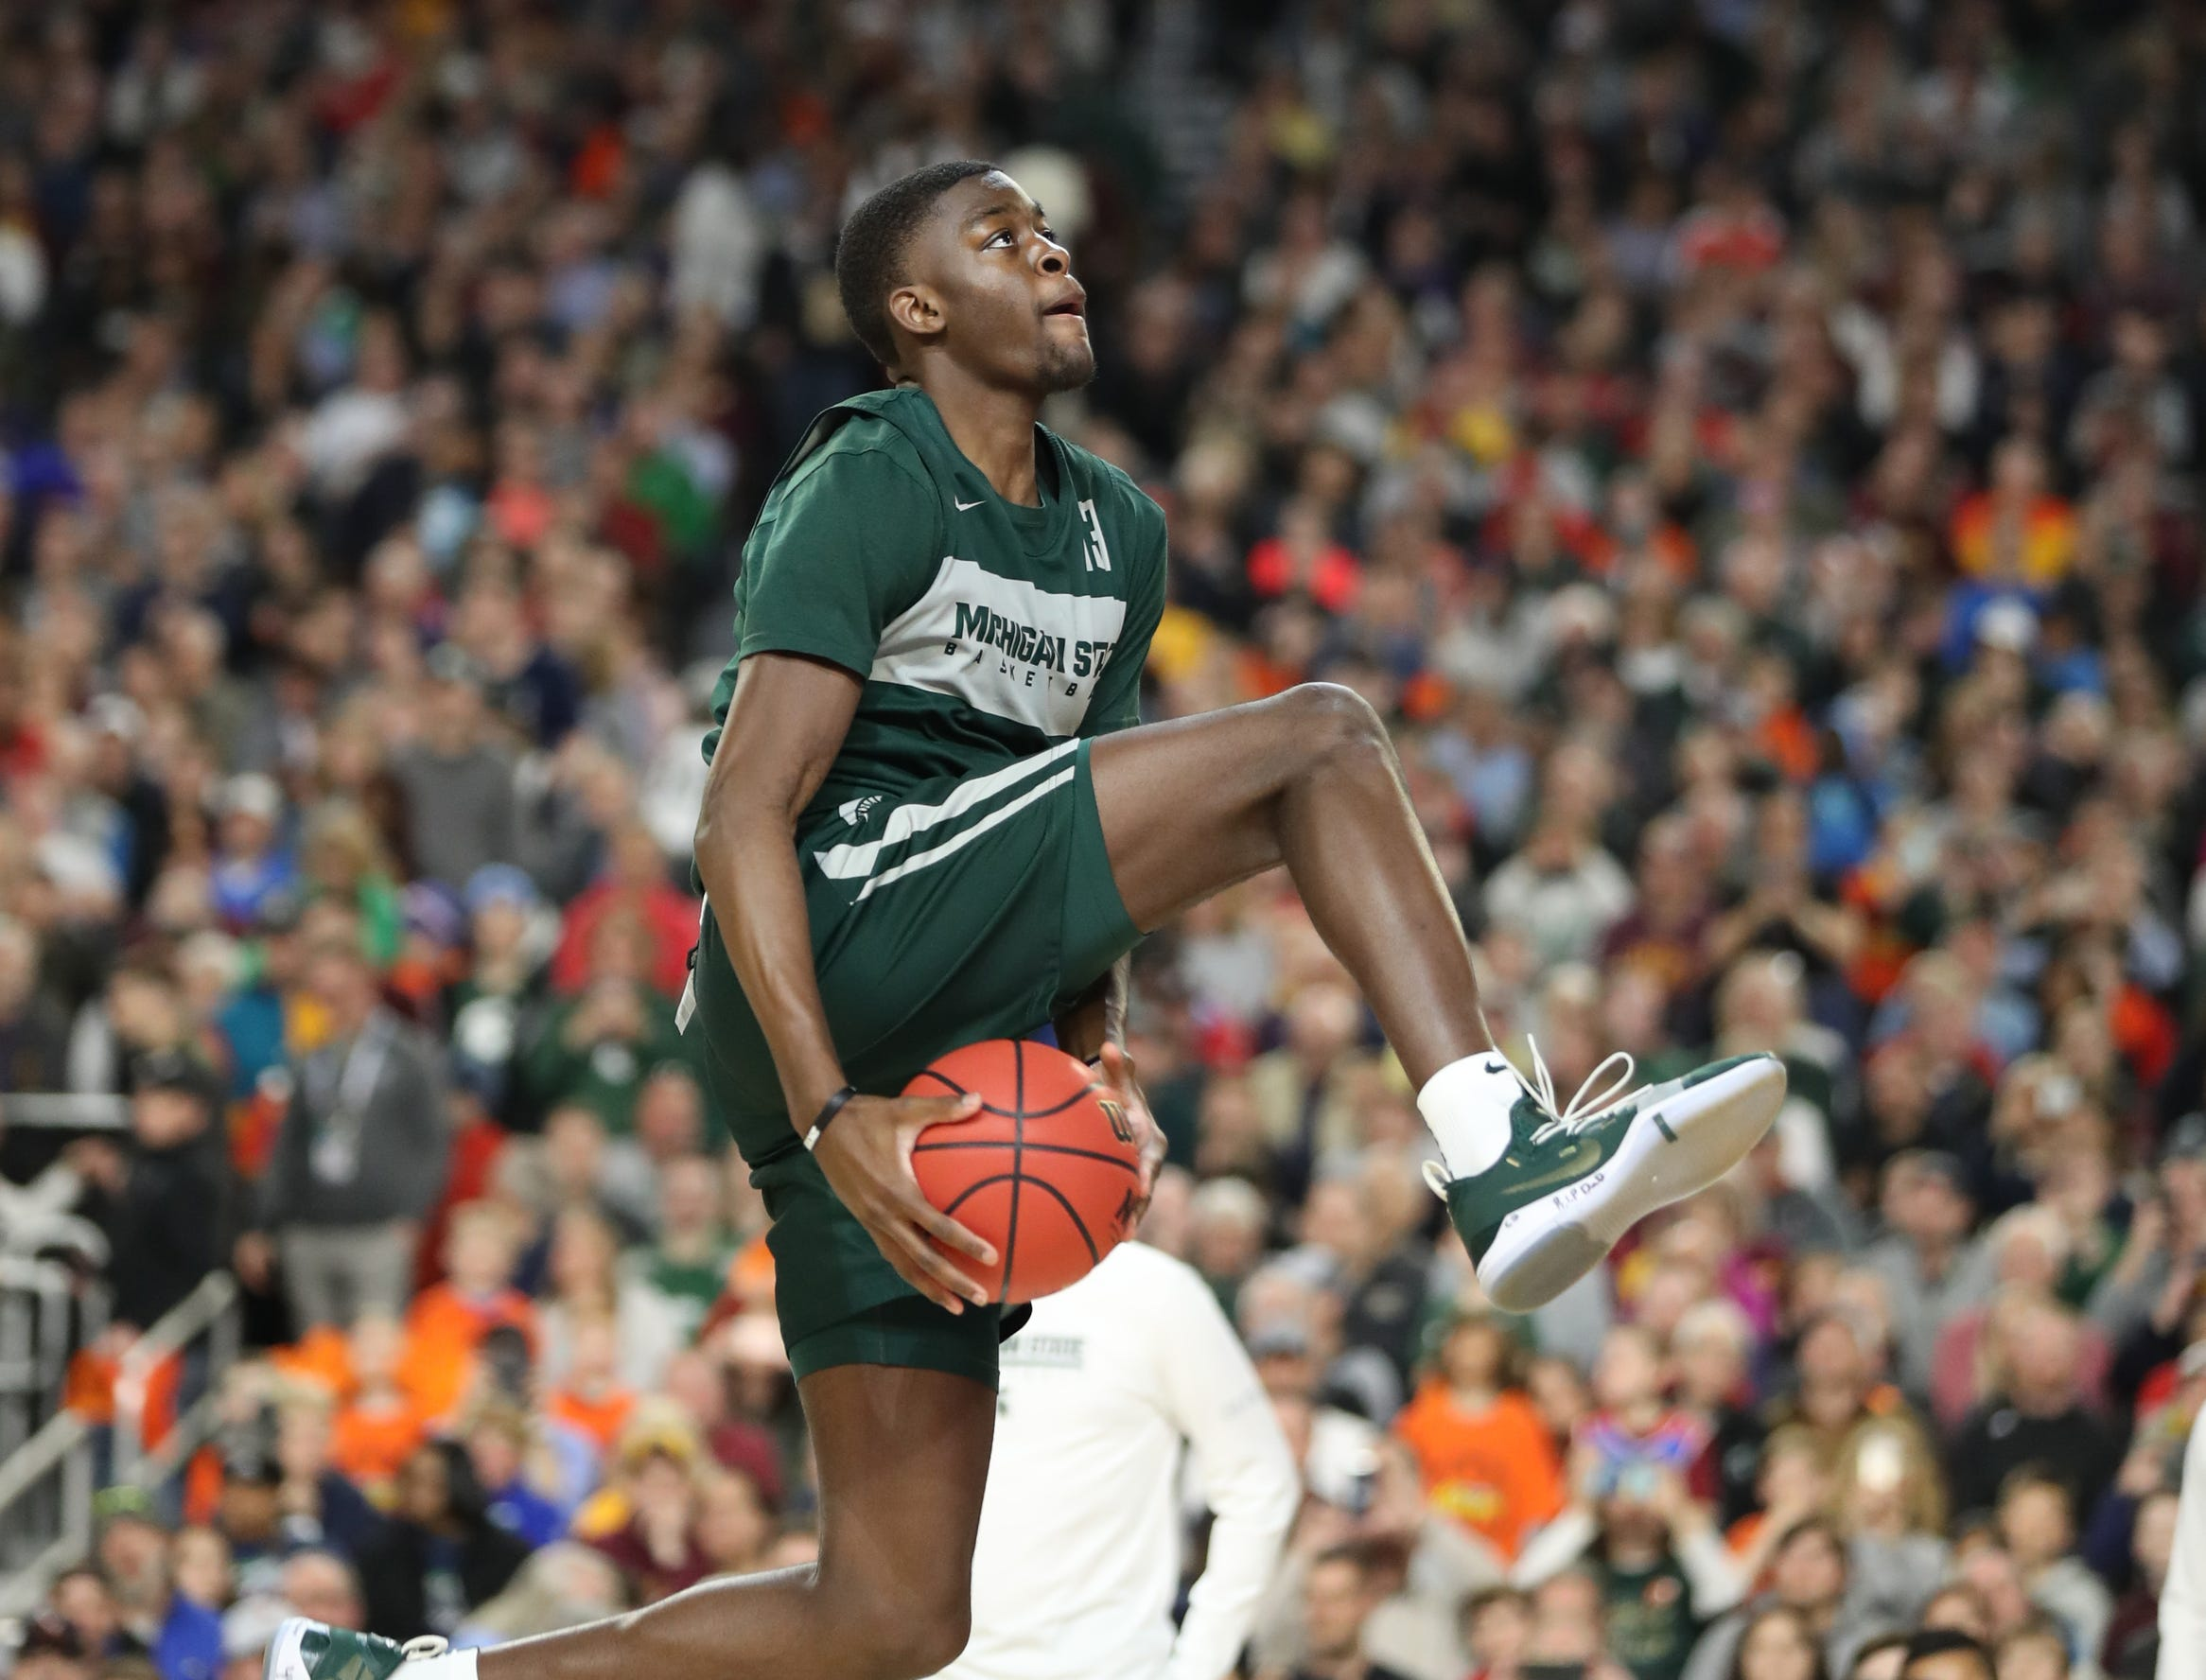 Michigan State forward Gabe Brown goes through drill during practice for their NCAA semifinal game against Texas Tech Friday, April 5, 2019 at U.S. Bank Stadium in Minneapolis, Minn.